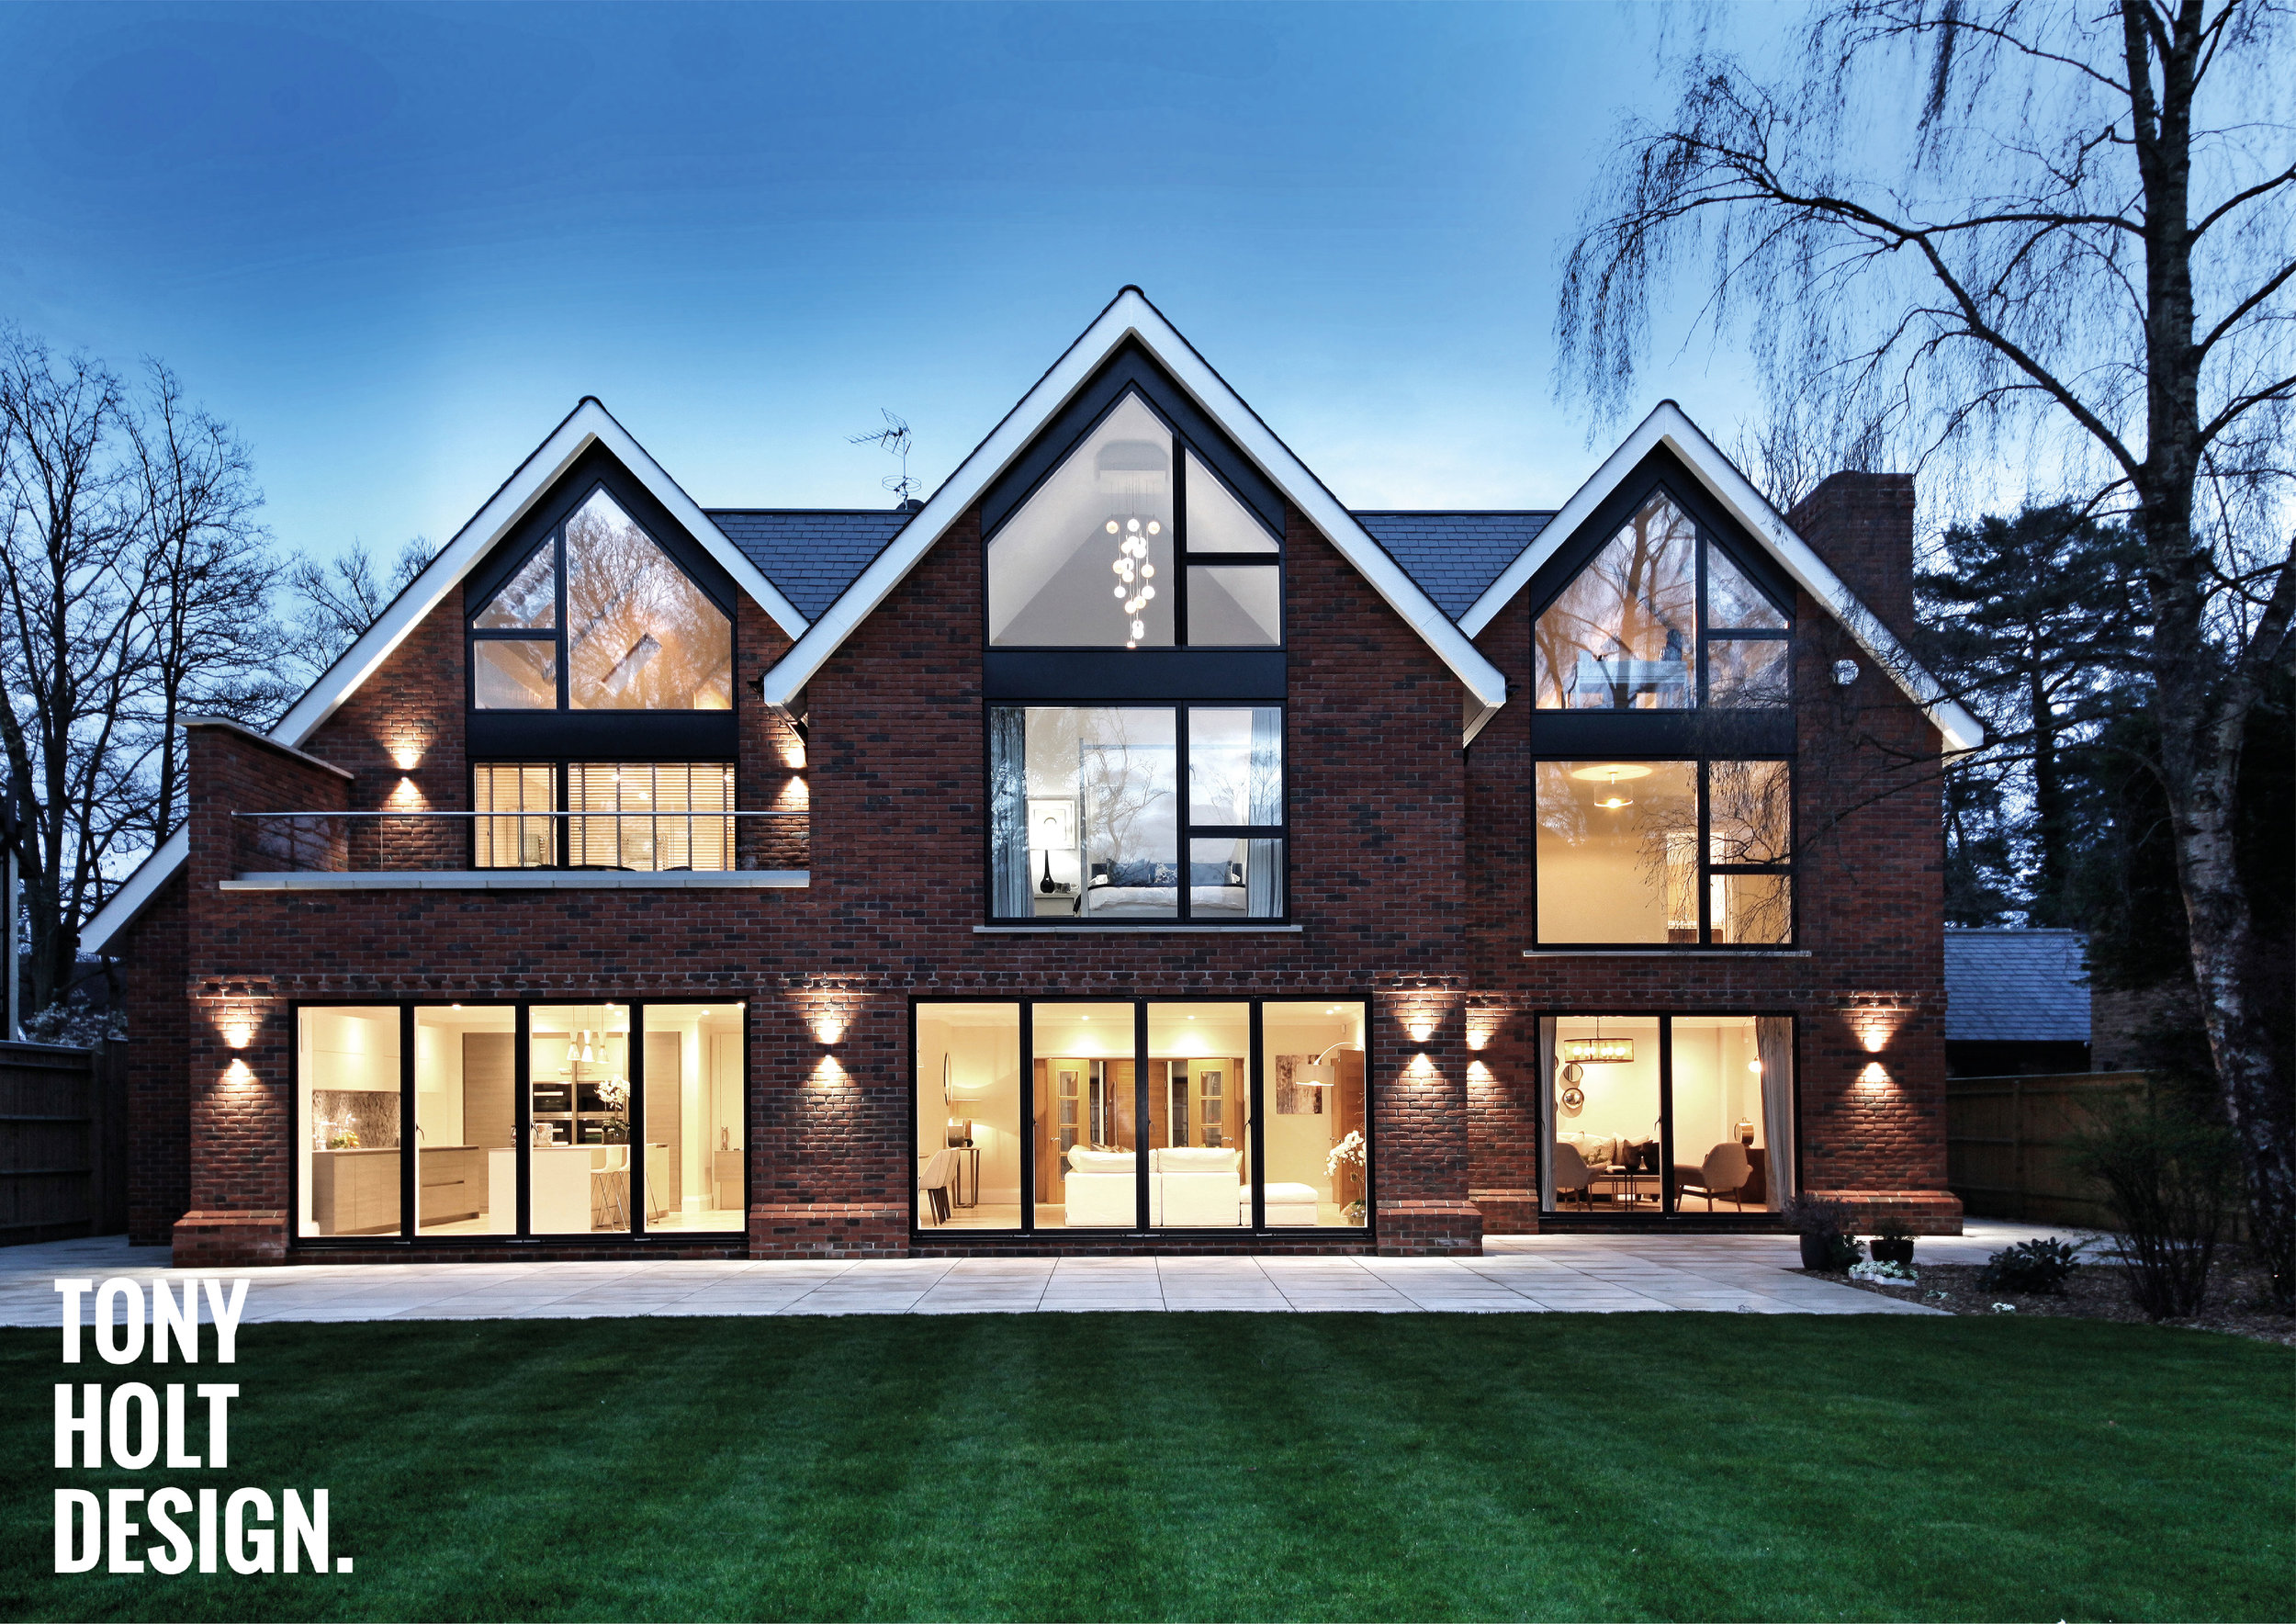 Tony-Holt-Design_Self-Build_New-Build_Maple-House_External_02.jpg